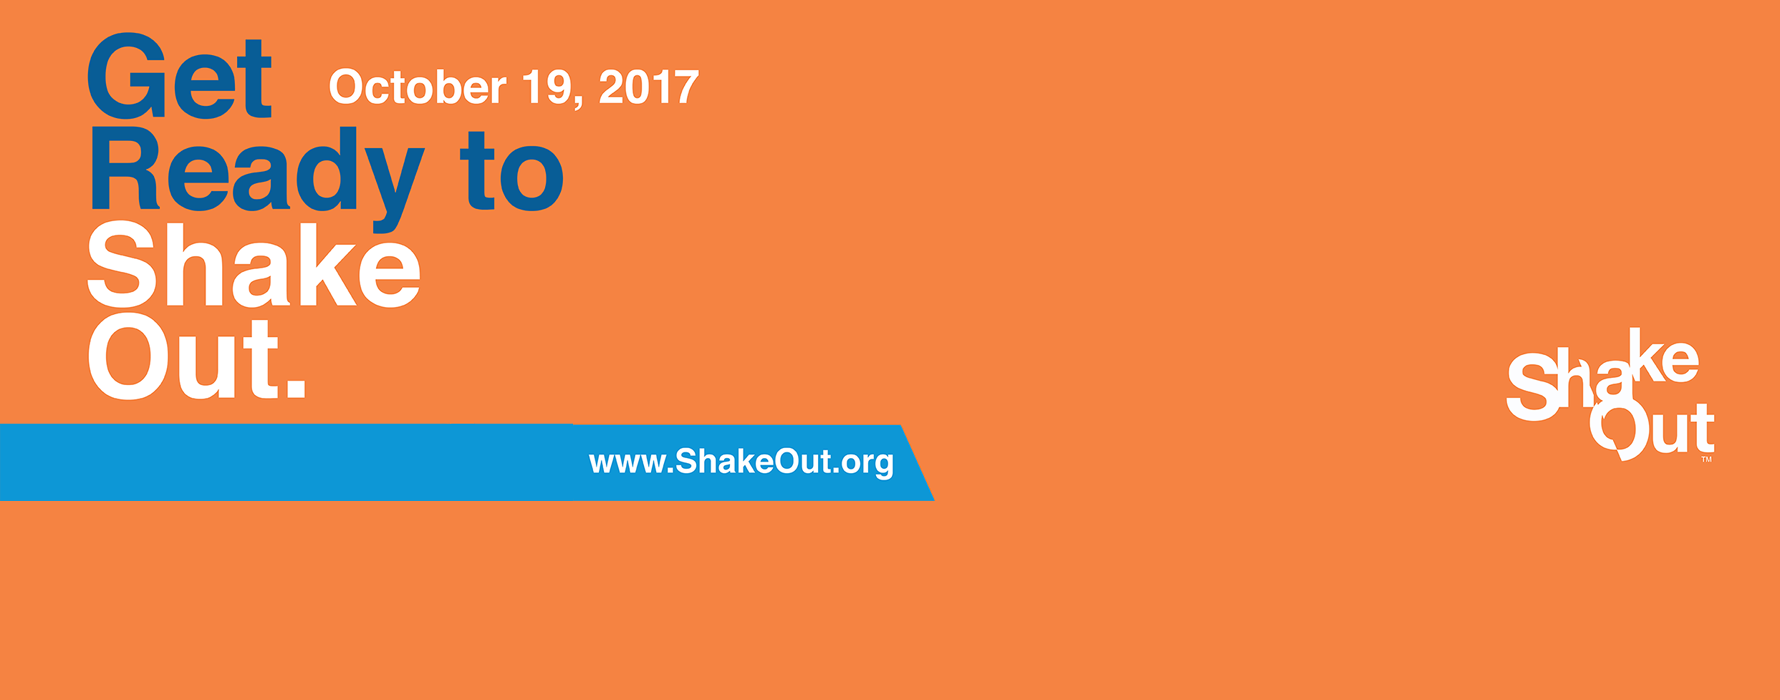 Get Ready to ShakeOut. October 19, 2017. www.ShakeOut.org